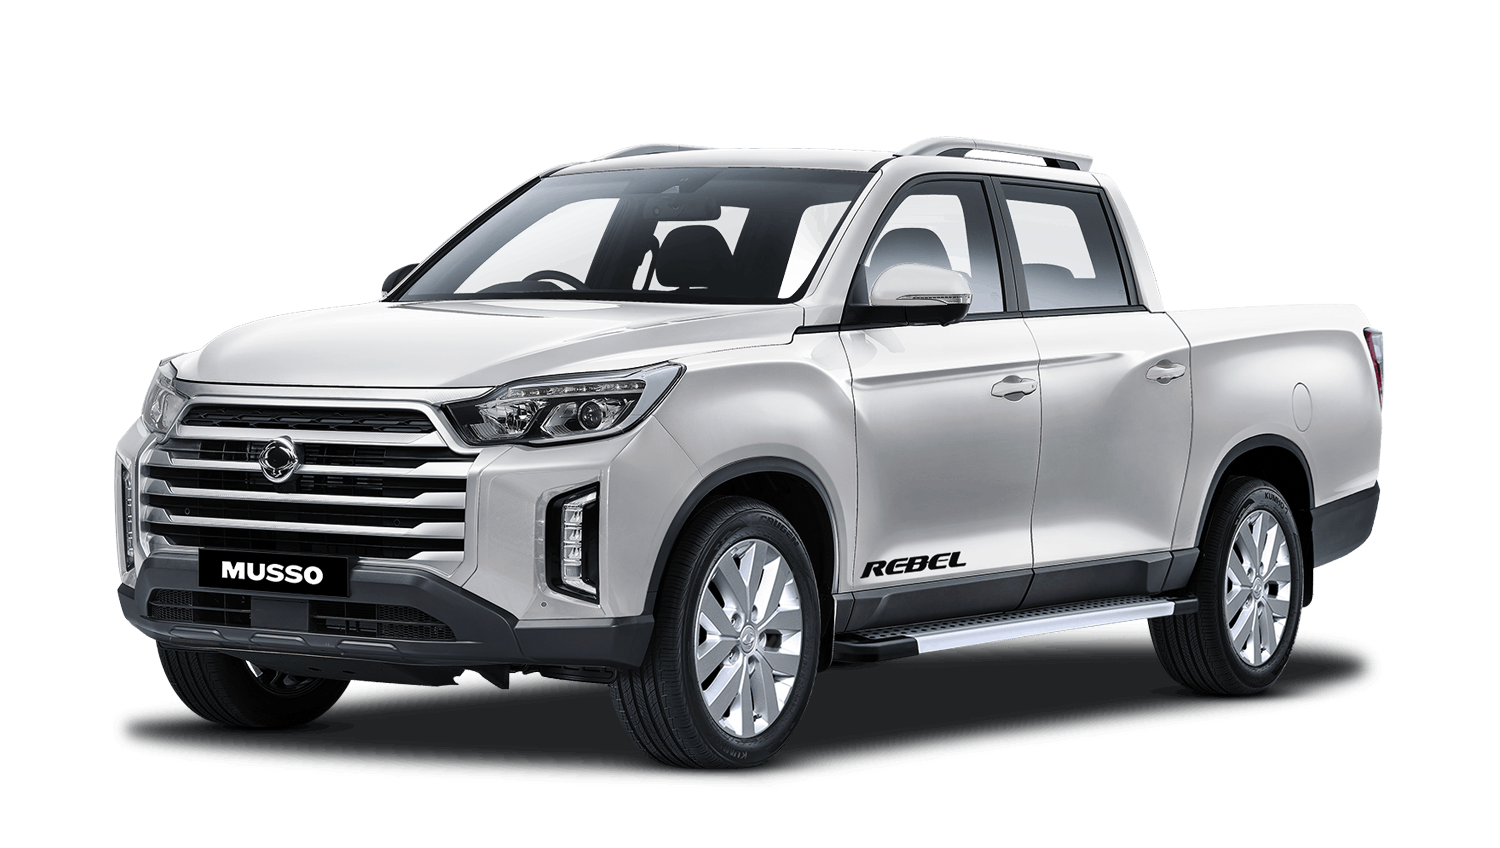 Grand White Ssangyong Musso